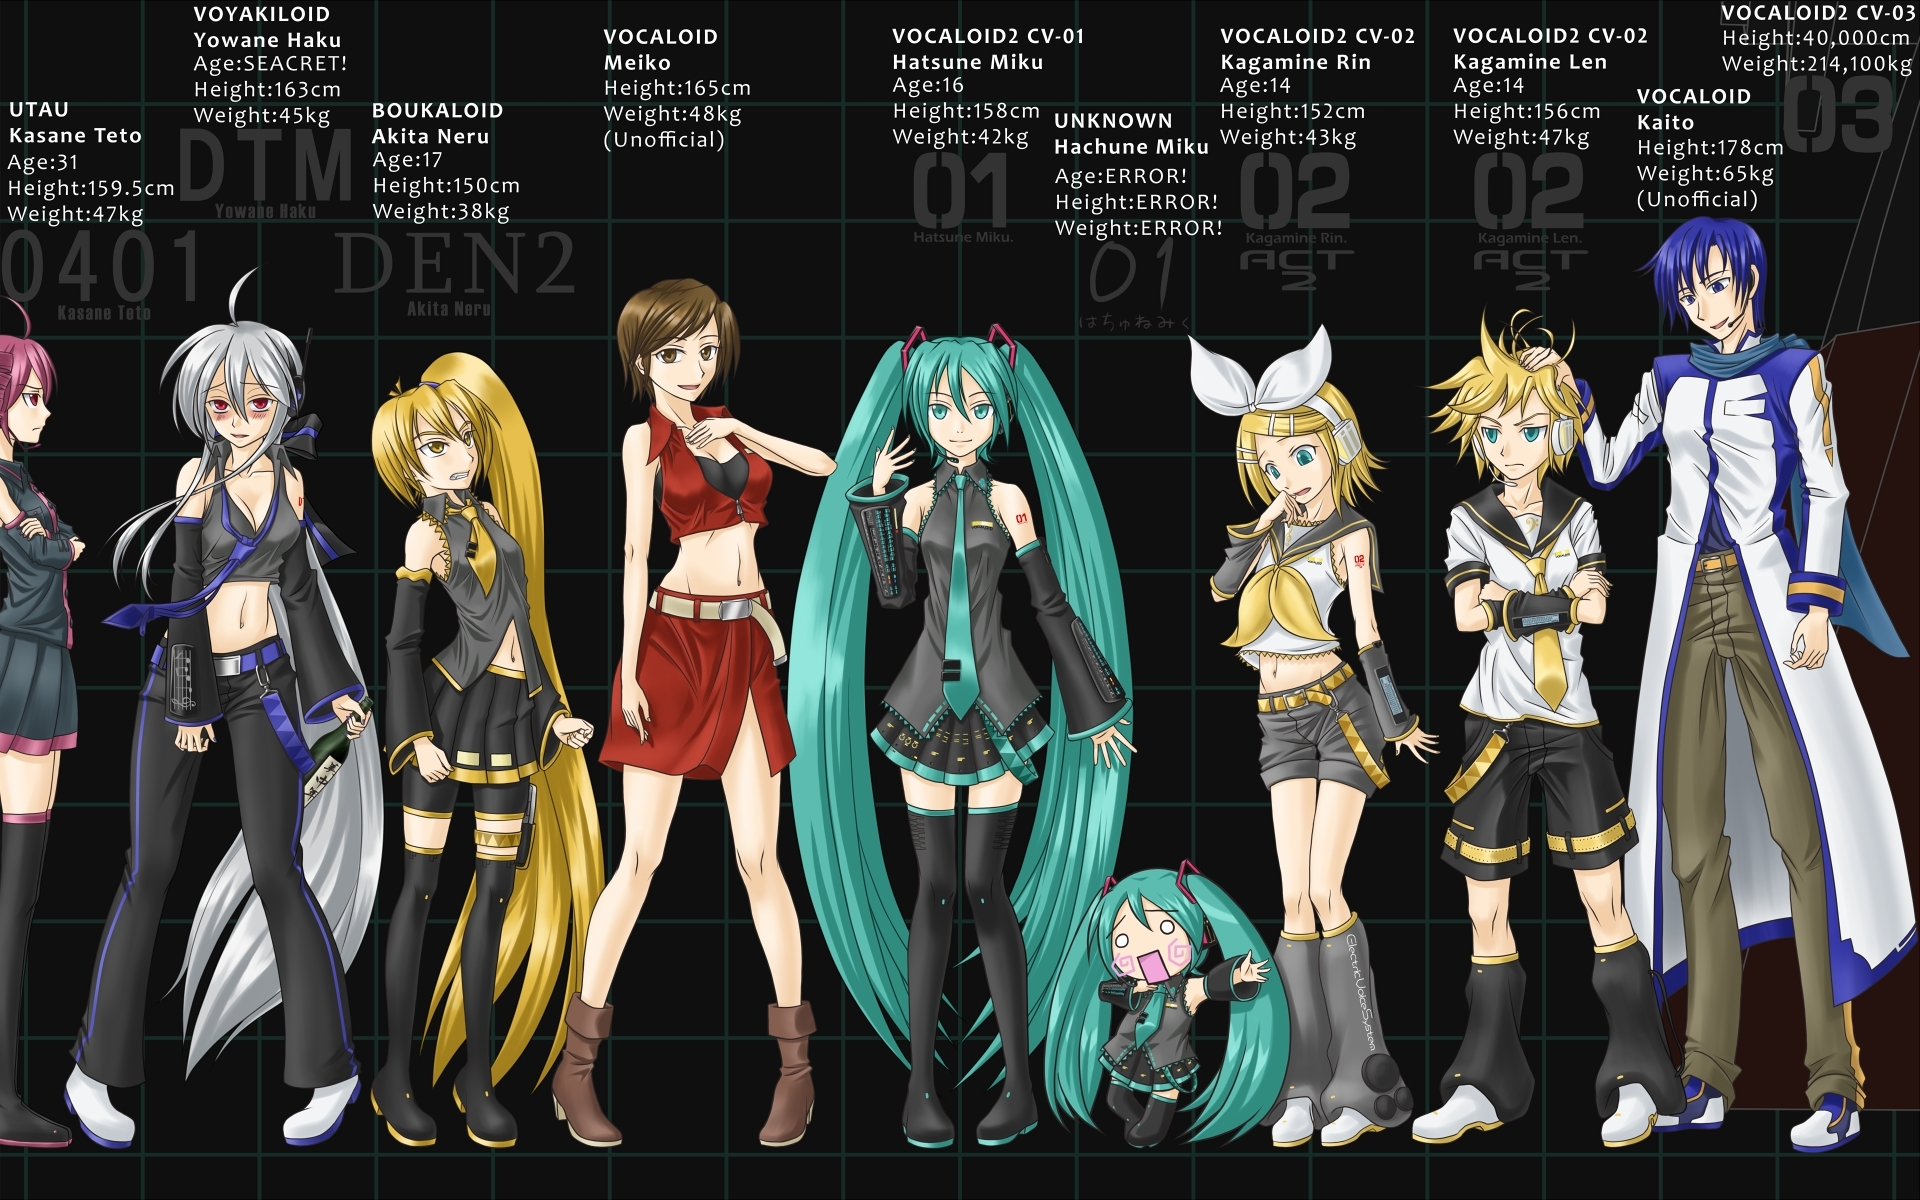 Anime Characters Named Rin : Anime talk vocaloids heromachine character portrait